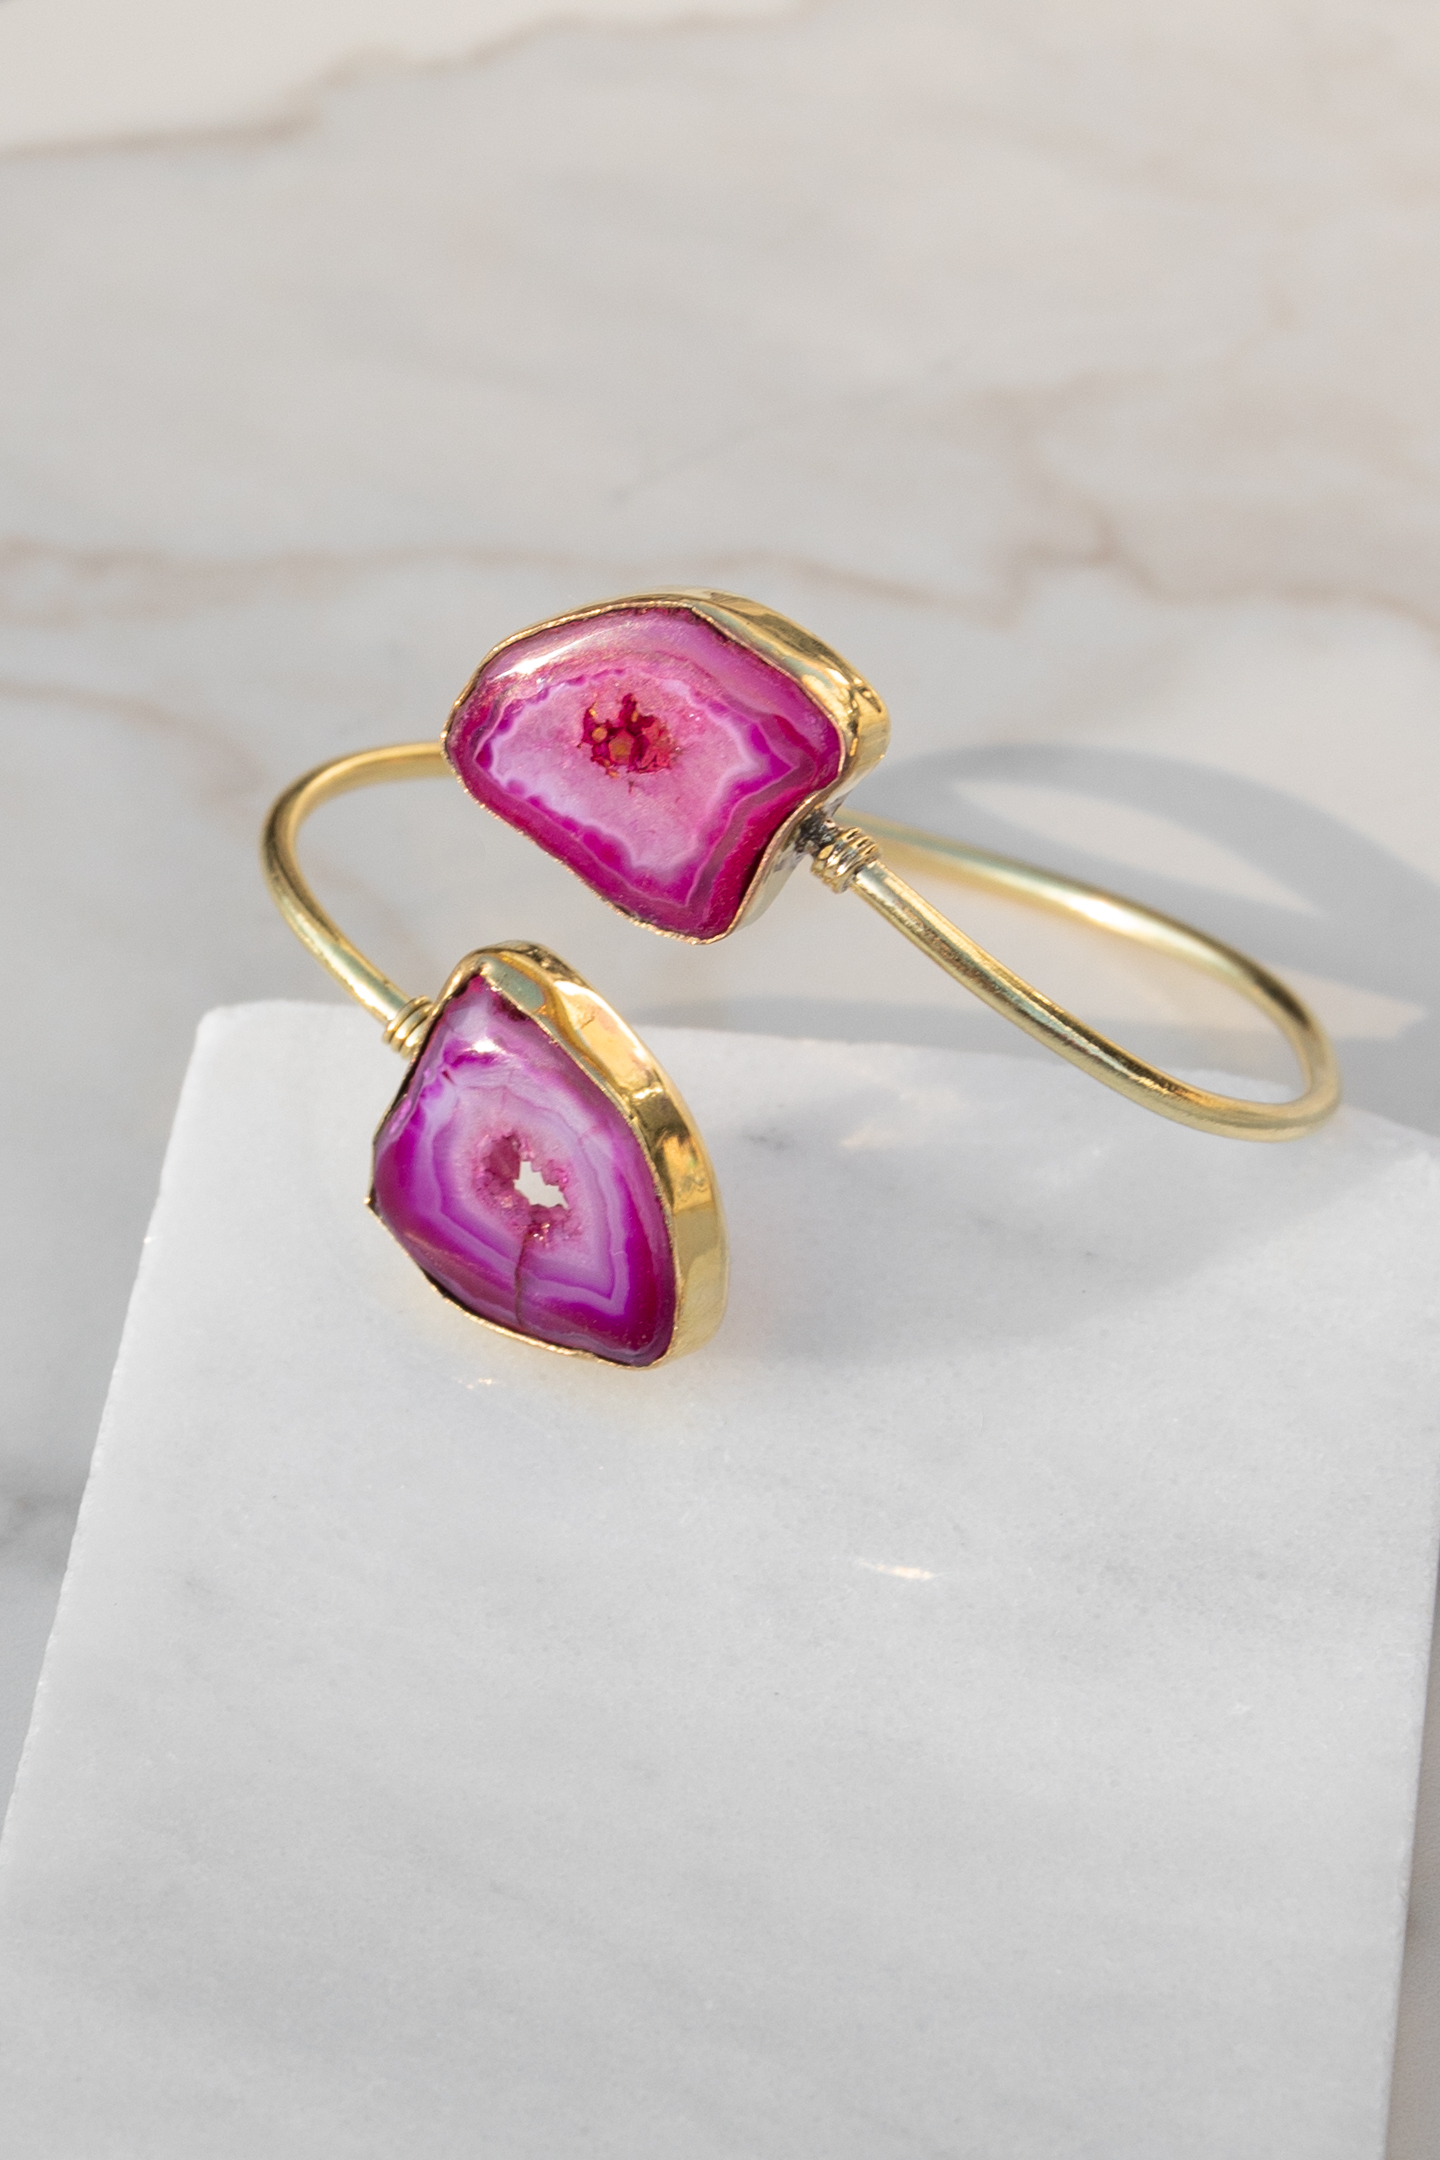 Gold Adjustable Bracelet with Fuchsia Stone Details